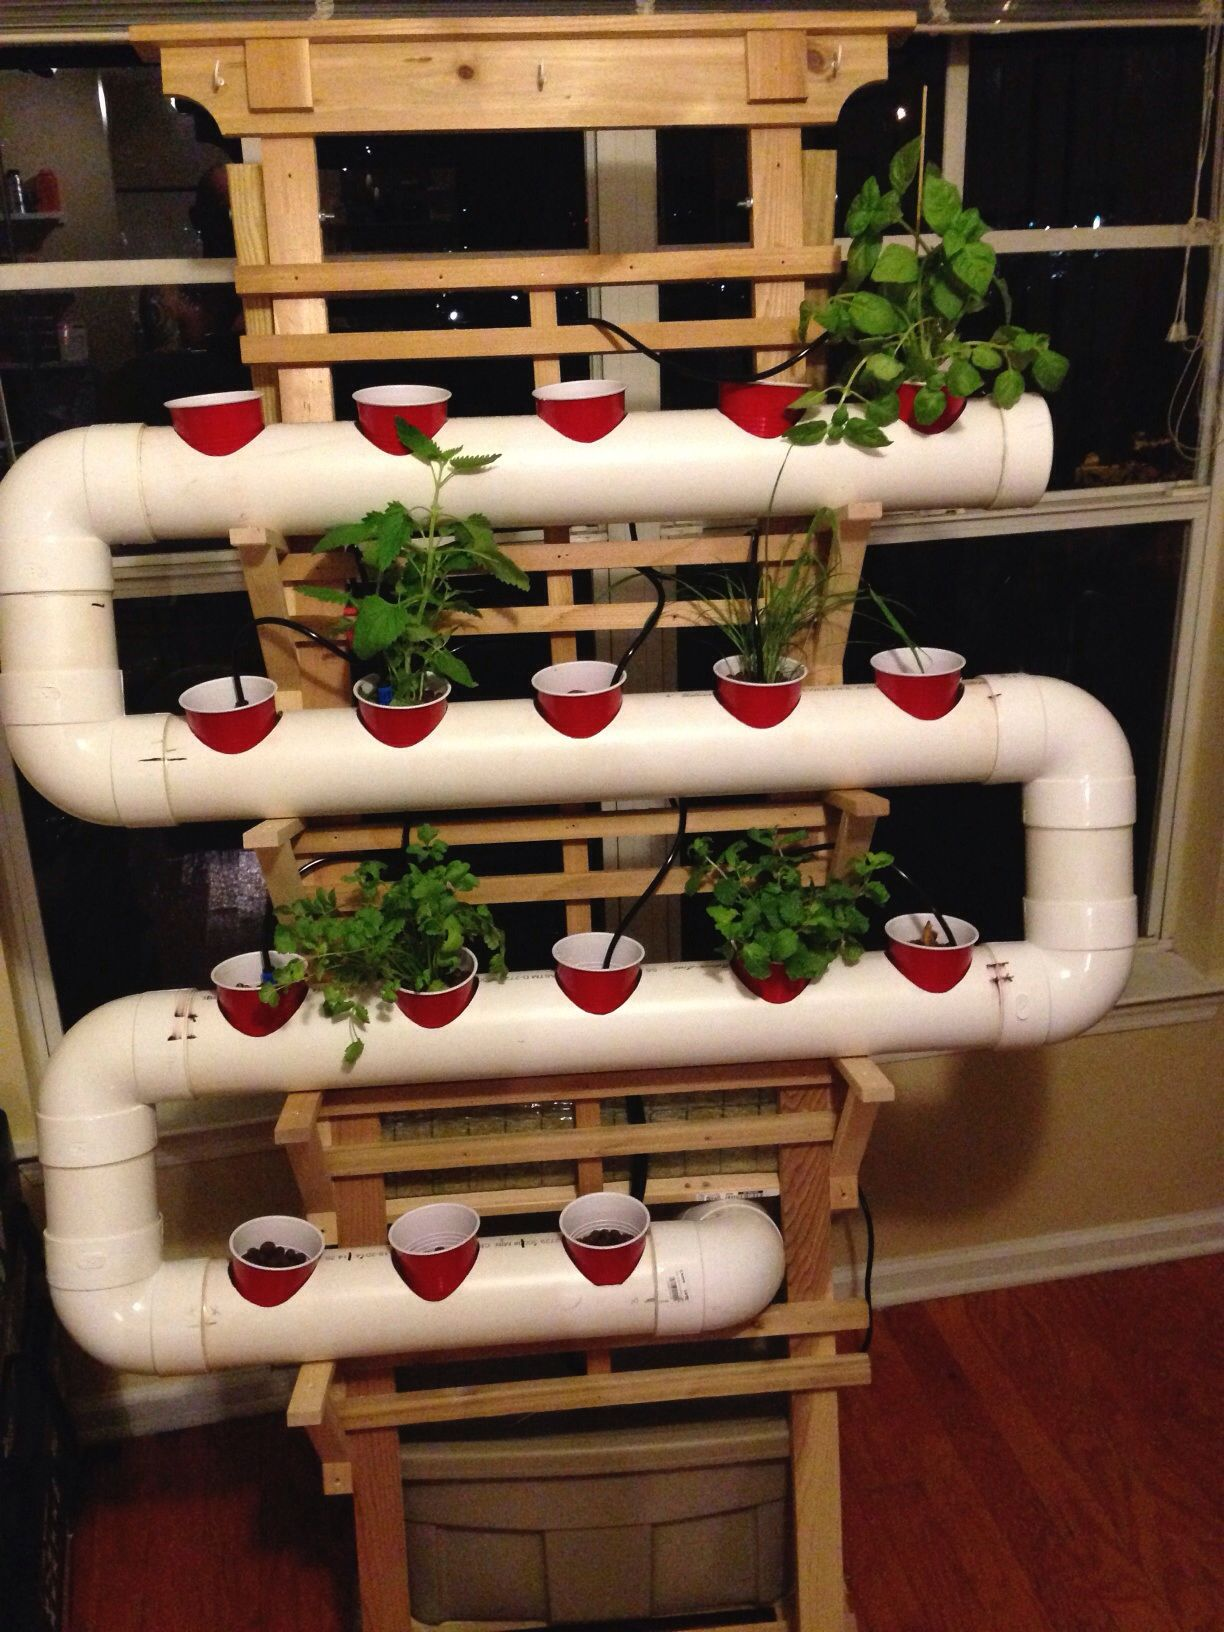 I've always wanted to build a small hydroponic herb garden